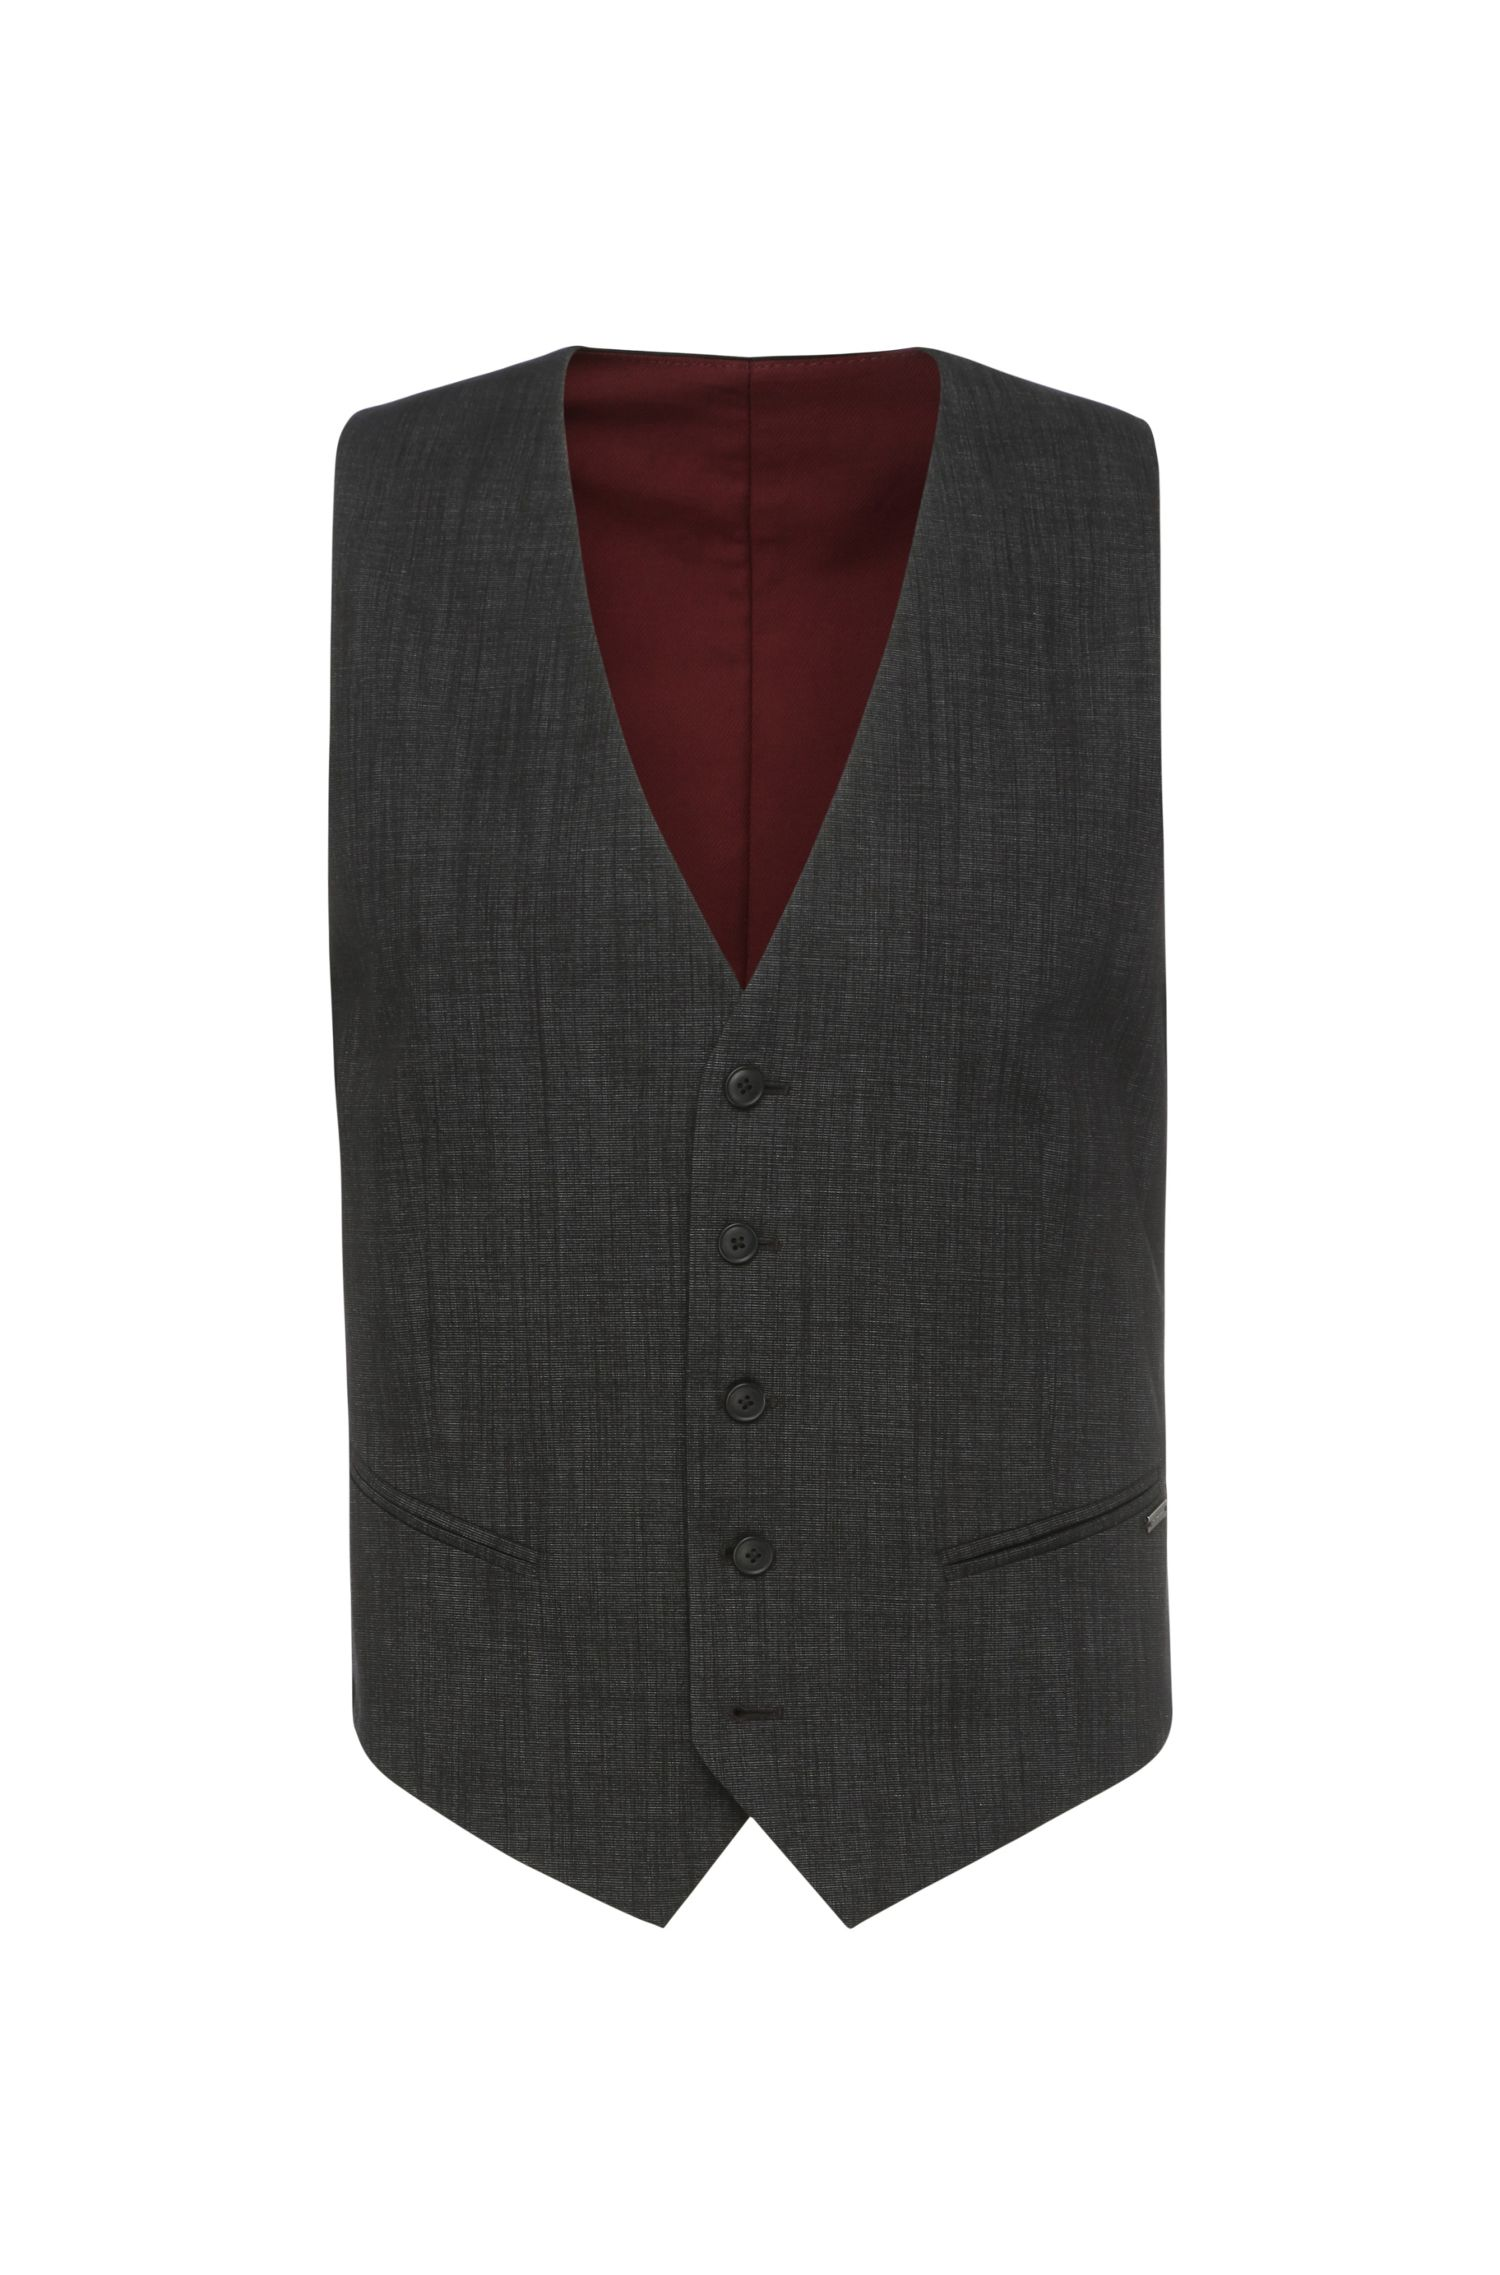 Slim-fit waistcoat in textured cotton blend: 'Bacer1BS'